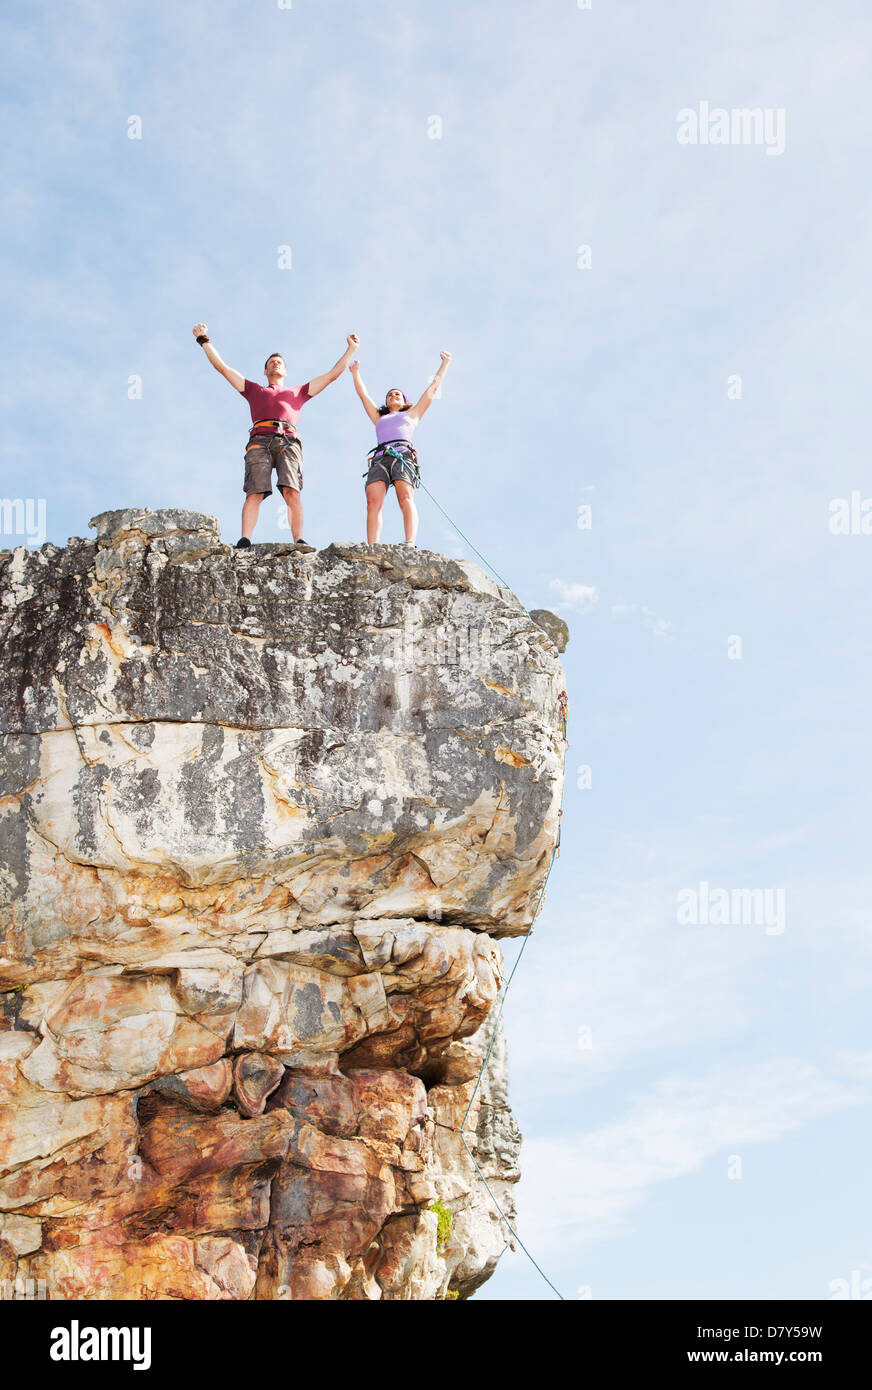 Climbers cheering on rocky cliff Stock Photo